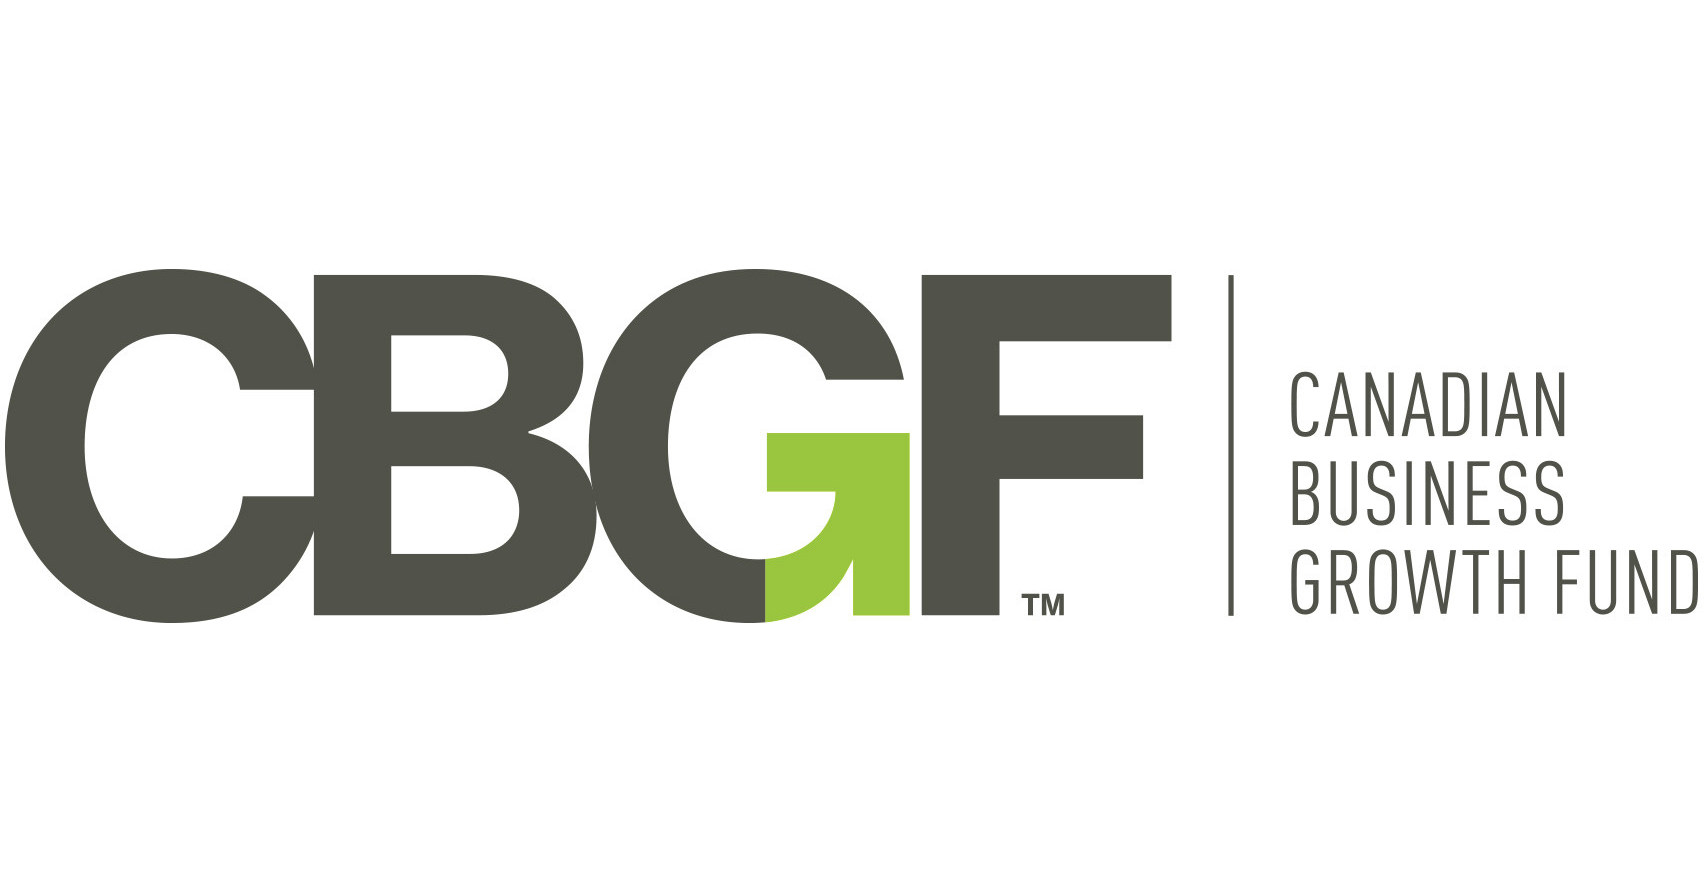 canadian business growth fund  cbgf  to drive expansion